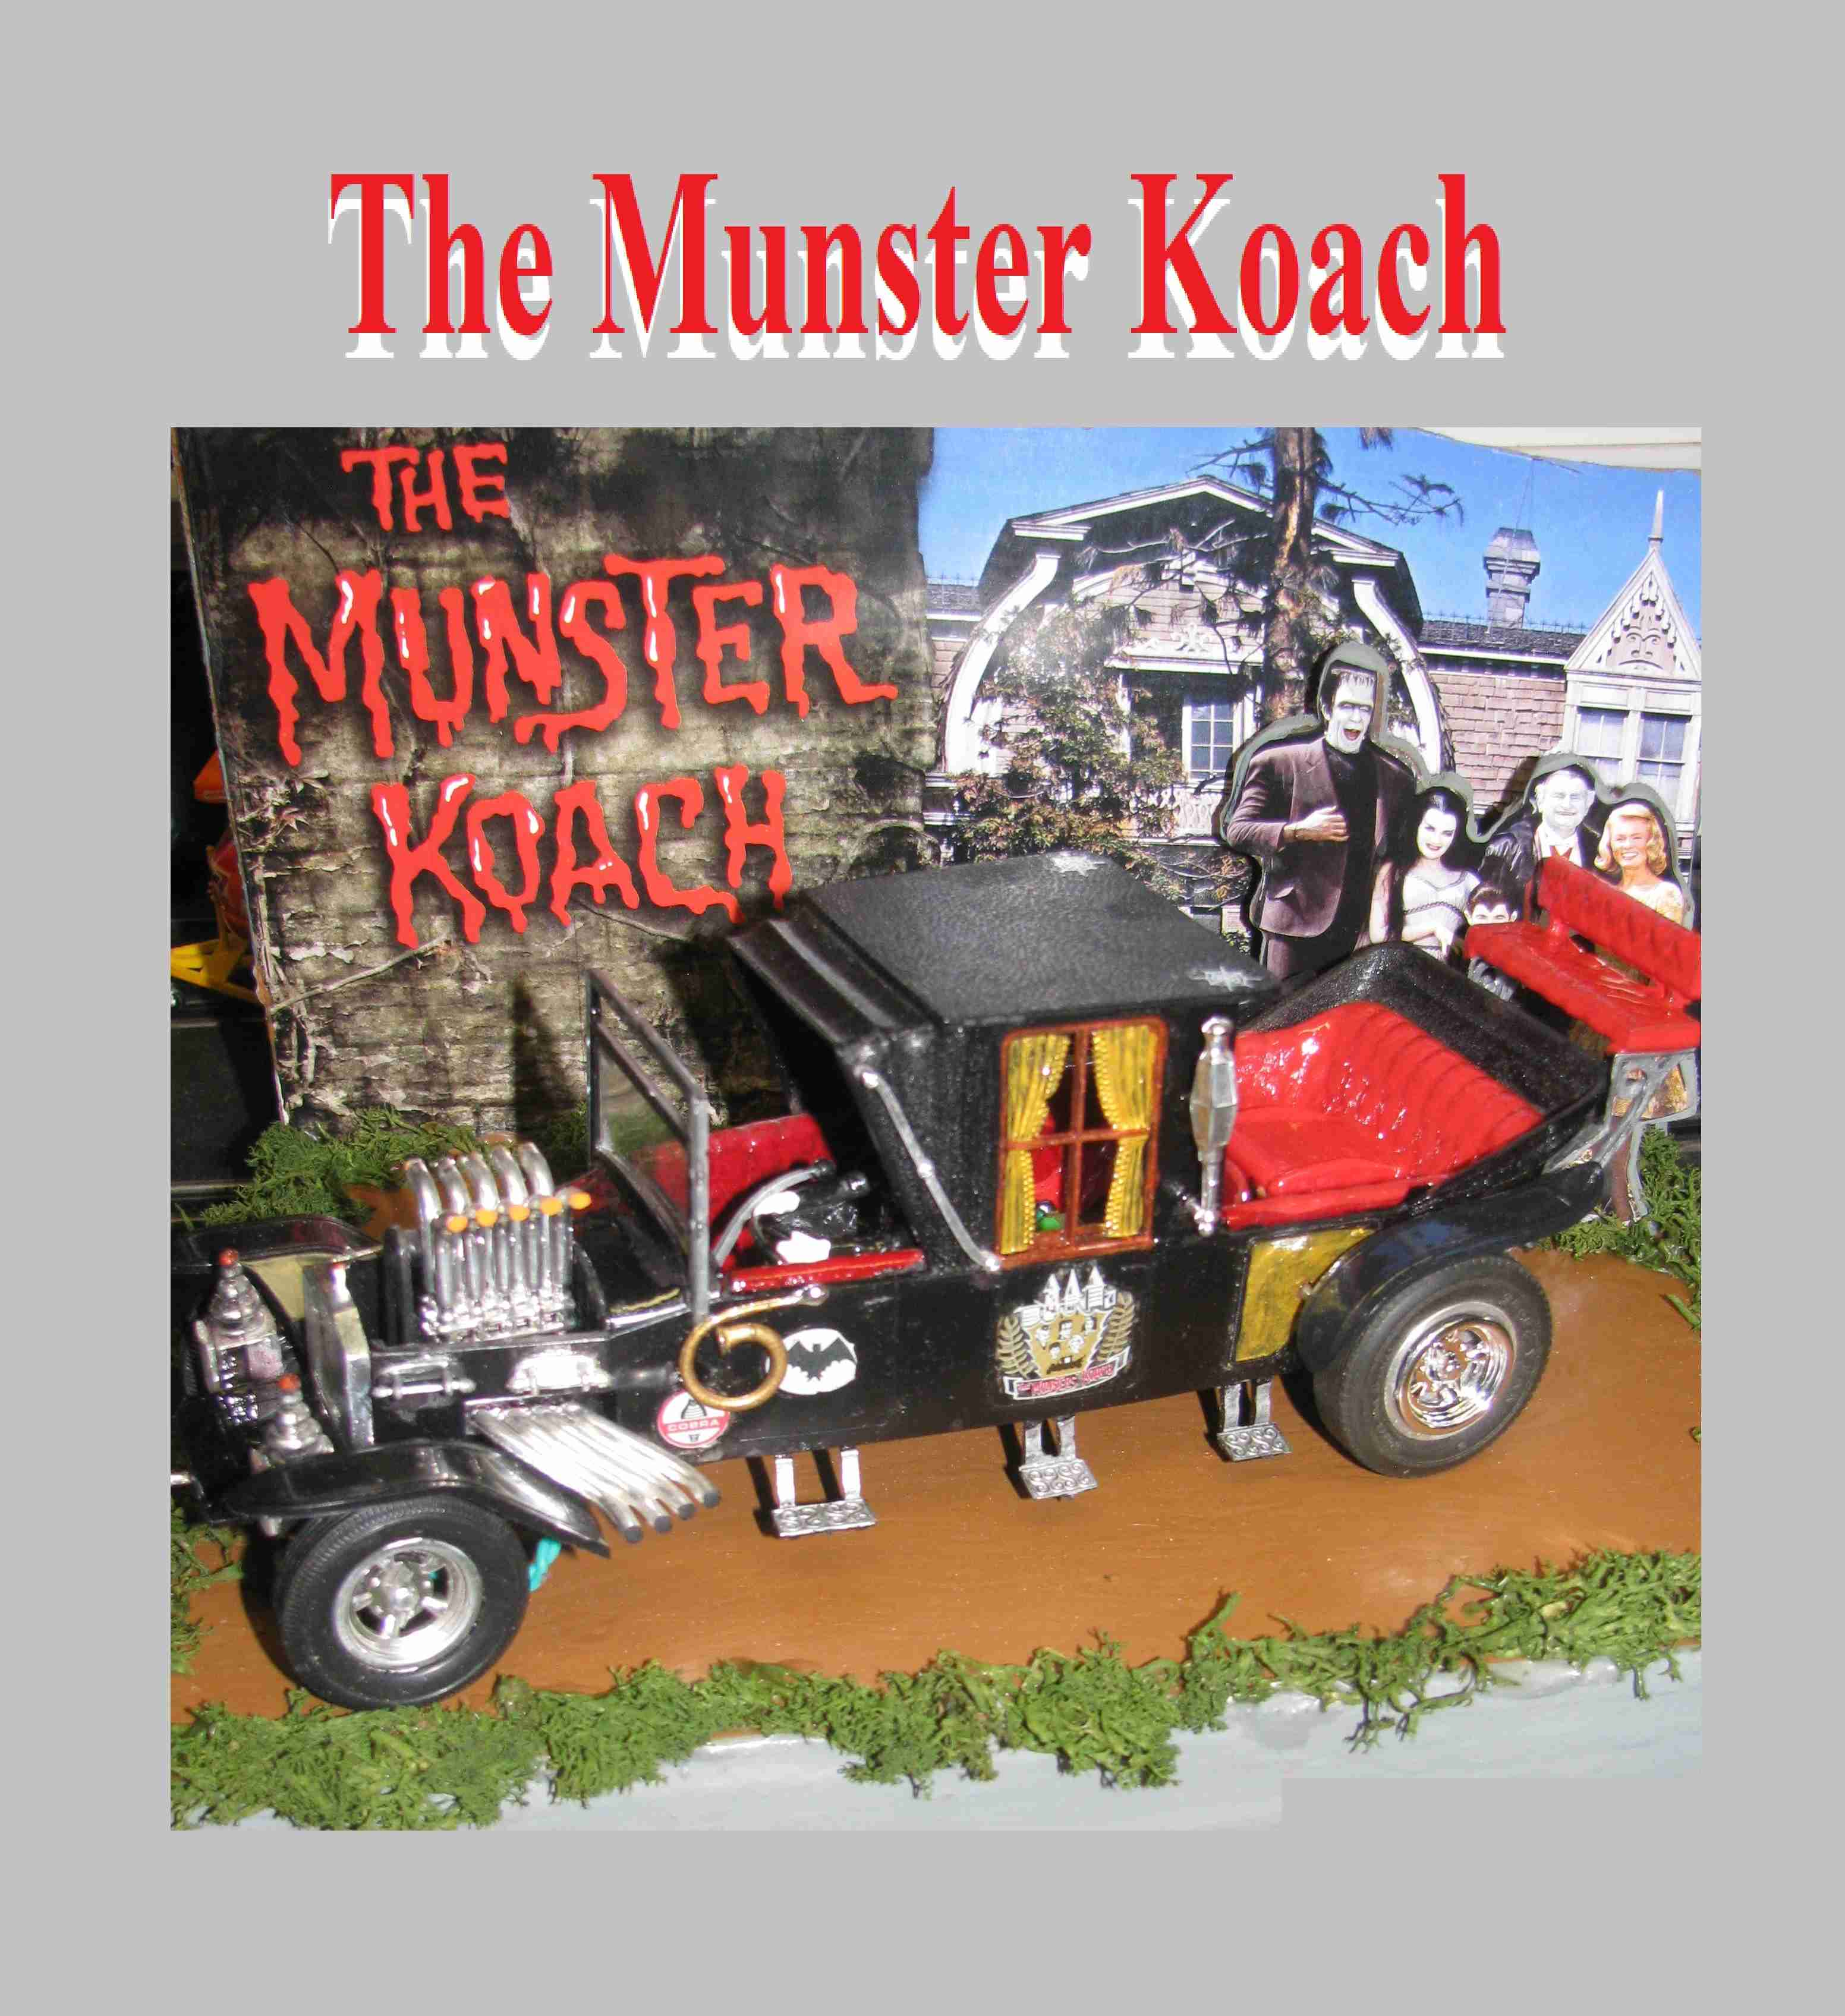 * SOLD * * SALE * The Munster Koach Slot Car 1/24 Scale with Hard Wood Display Stand & Driver